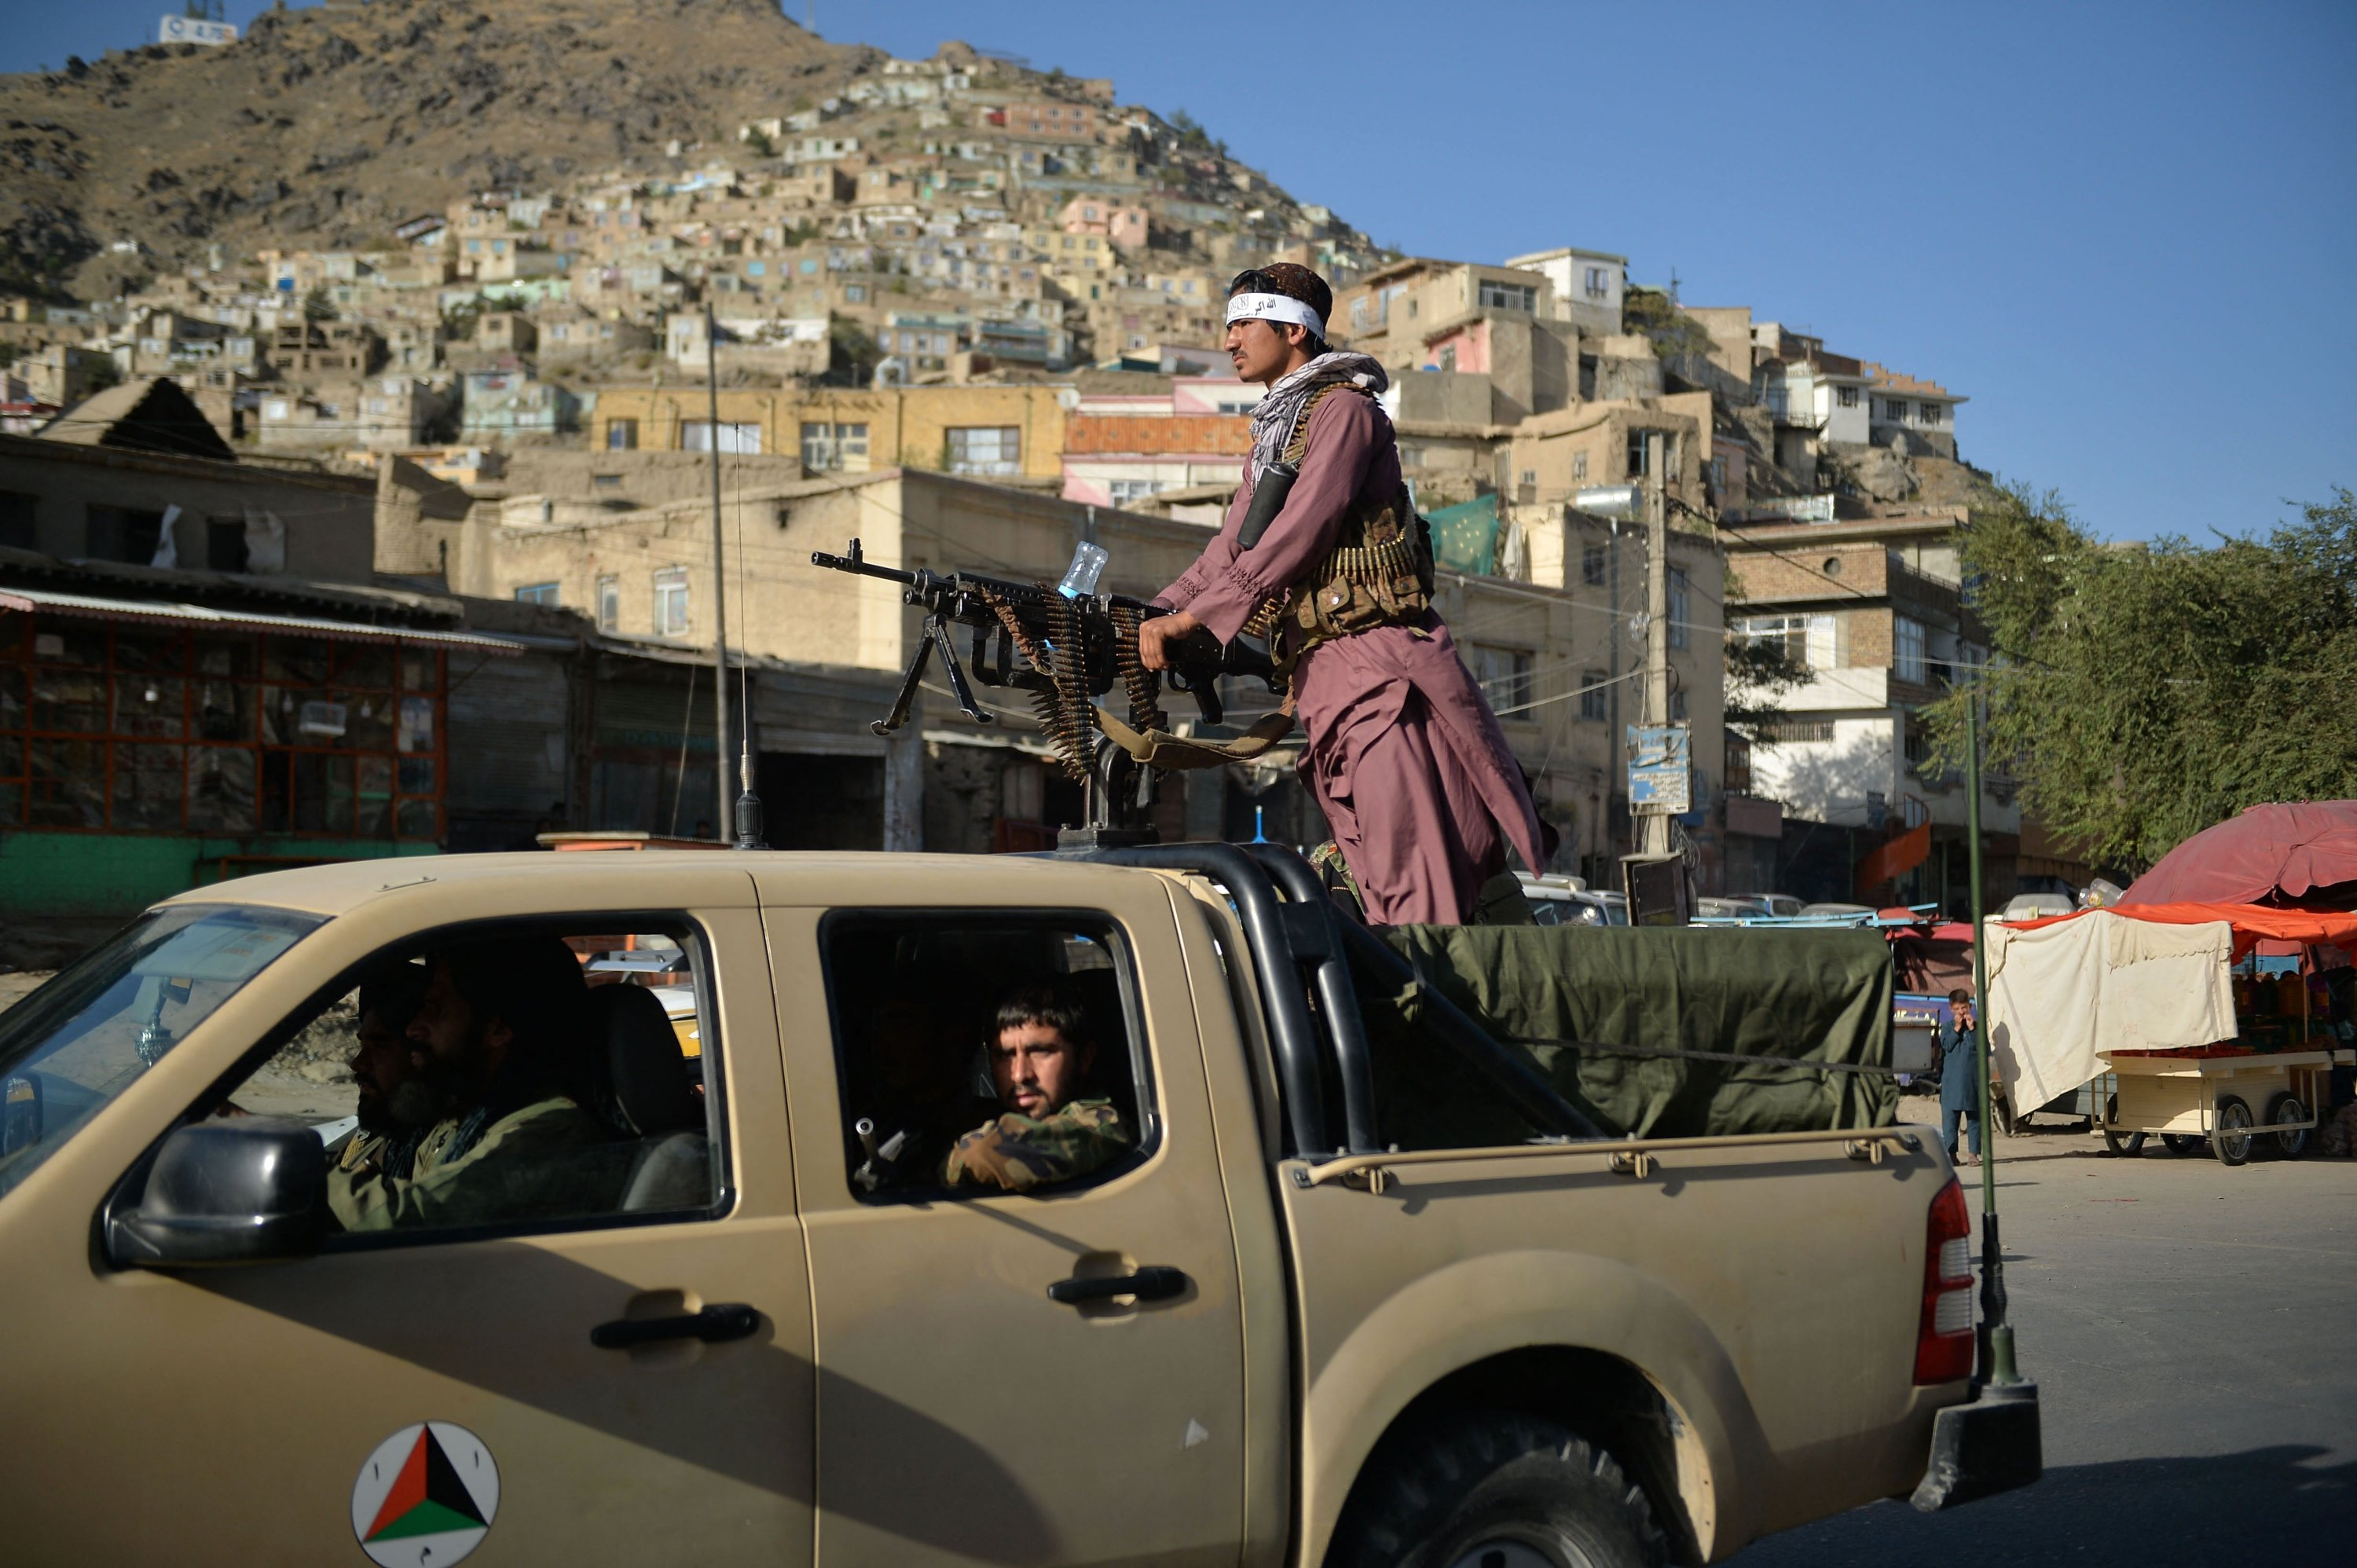 Taliban fighters patrol along a street in Kabul, Afghanistan, Sept. 13, 2021. (AFP Photo)